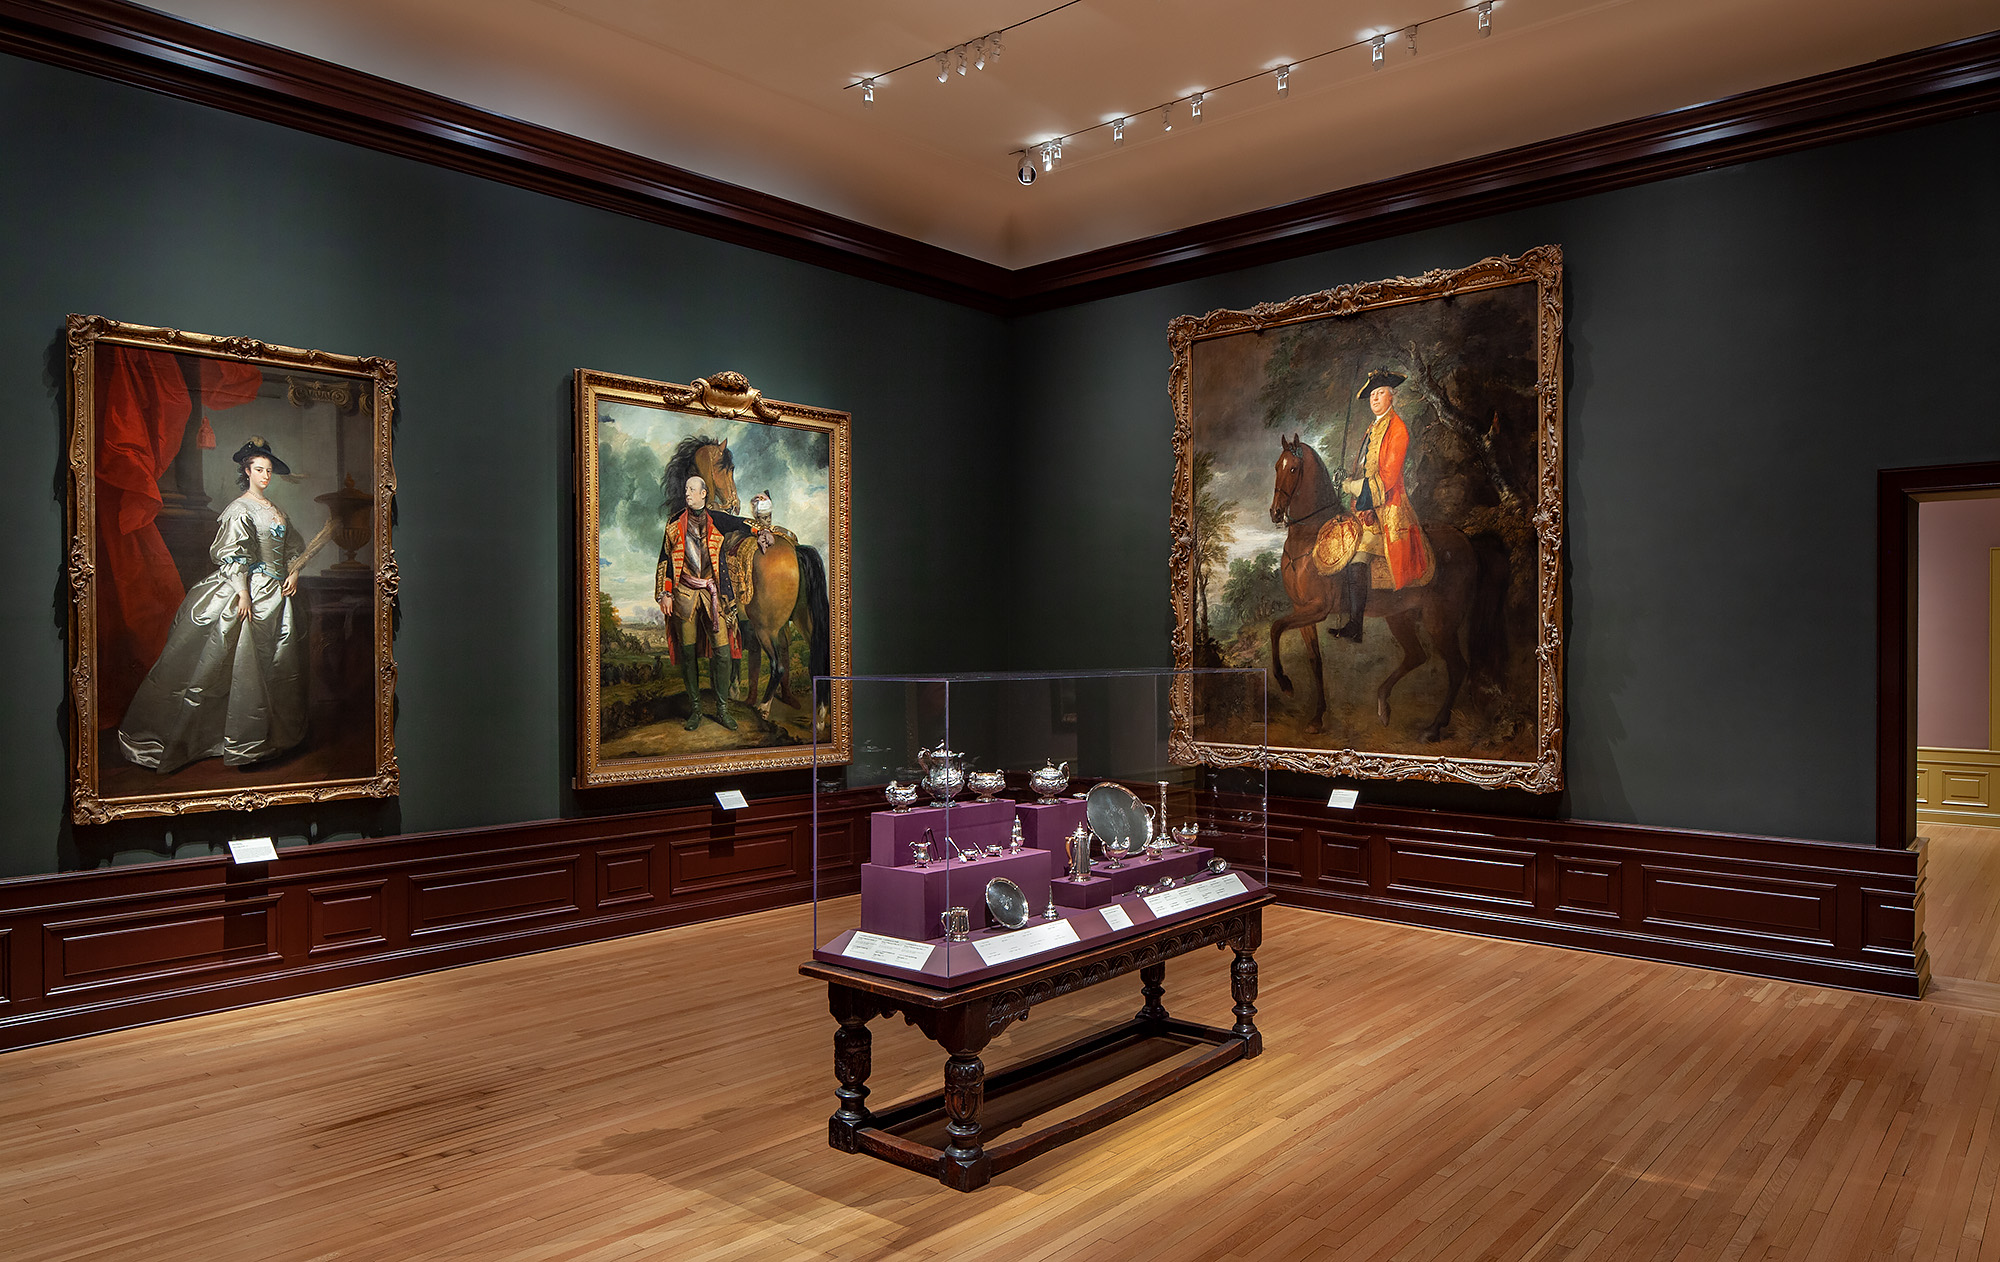 Gallery 16 of The John and Mable Ringling Museum of Art, Photo Copyright Ron Blunt